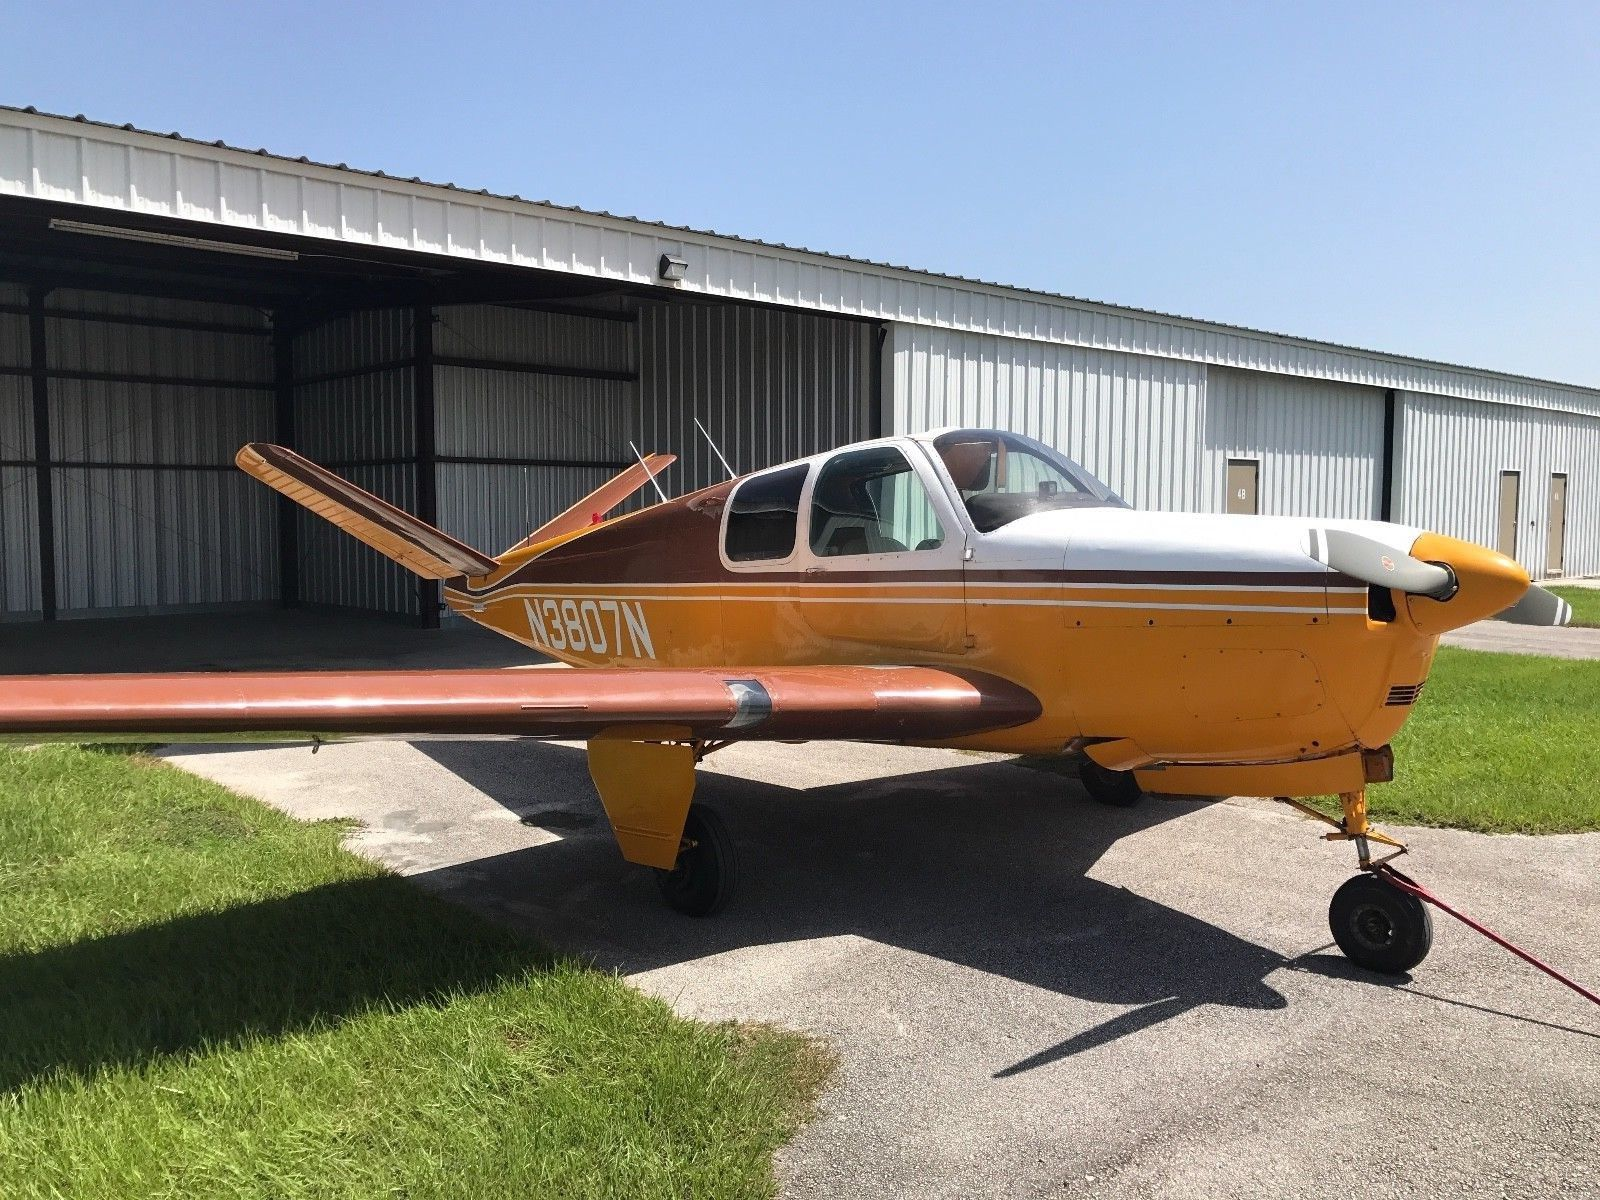 serviced 1947 Beechcraft Bonanza 35 aircraft for sale